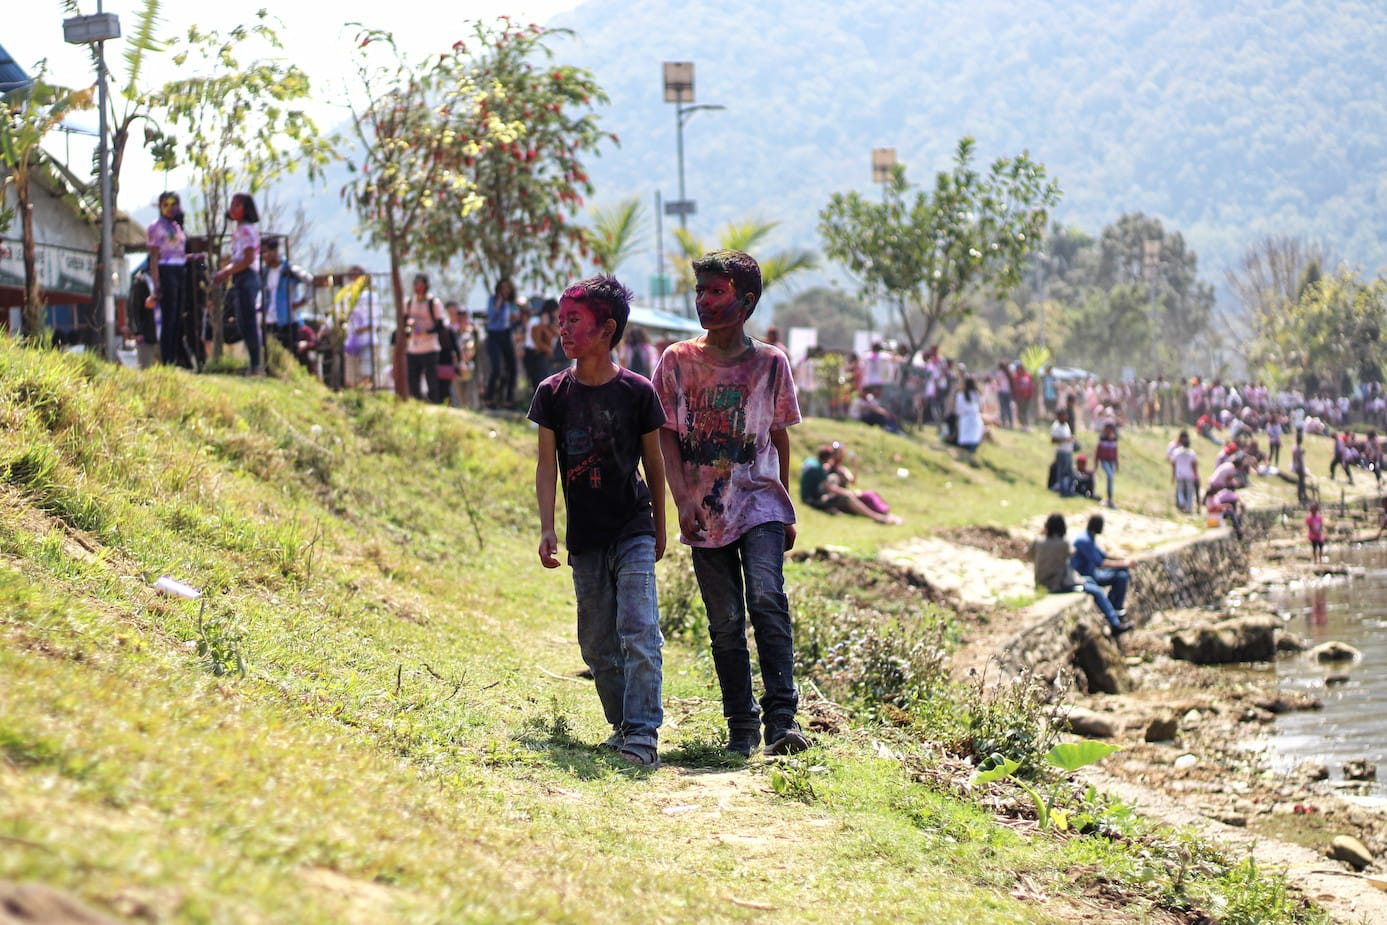 Pokhara Lakeside During Holi